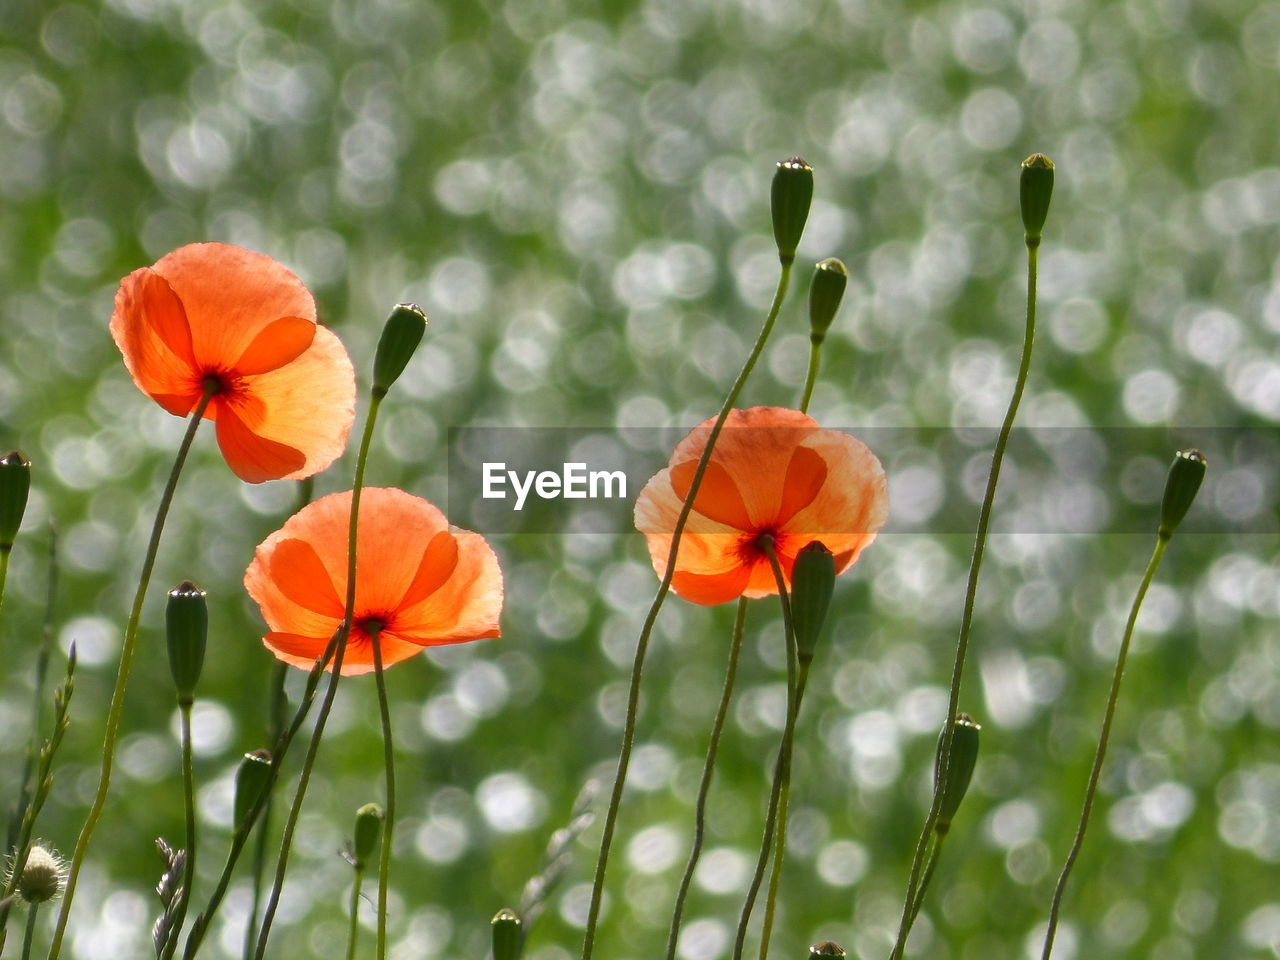 flower, growth, nature, plant, beauty in nature, freshness, orange color, petal, flower head, blooming, fragility, no people, focus on foreground, outdoors, day, close-up